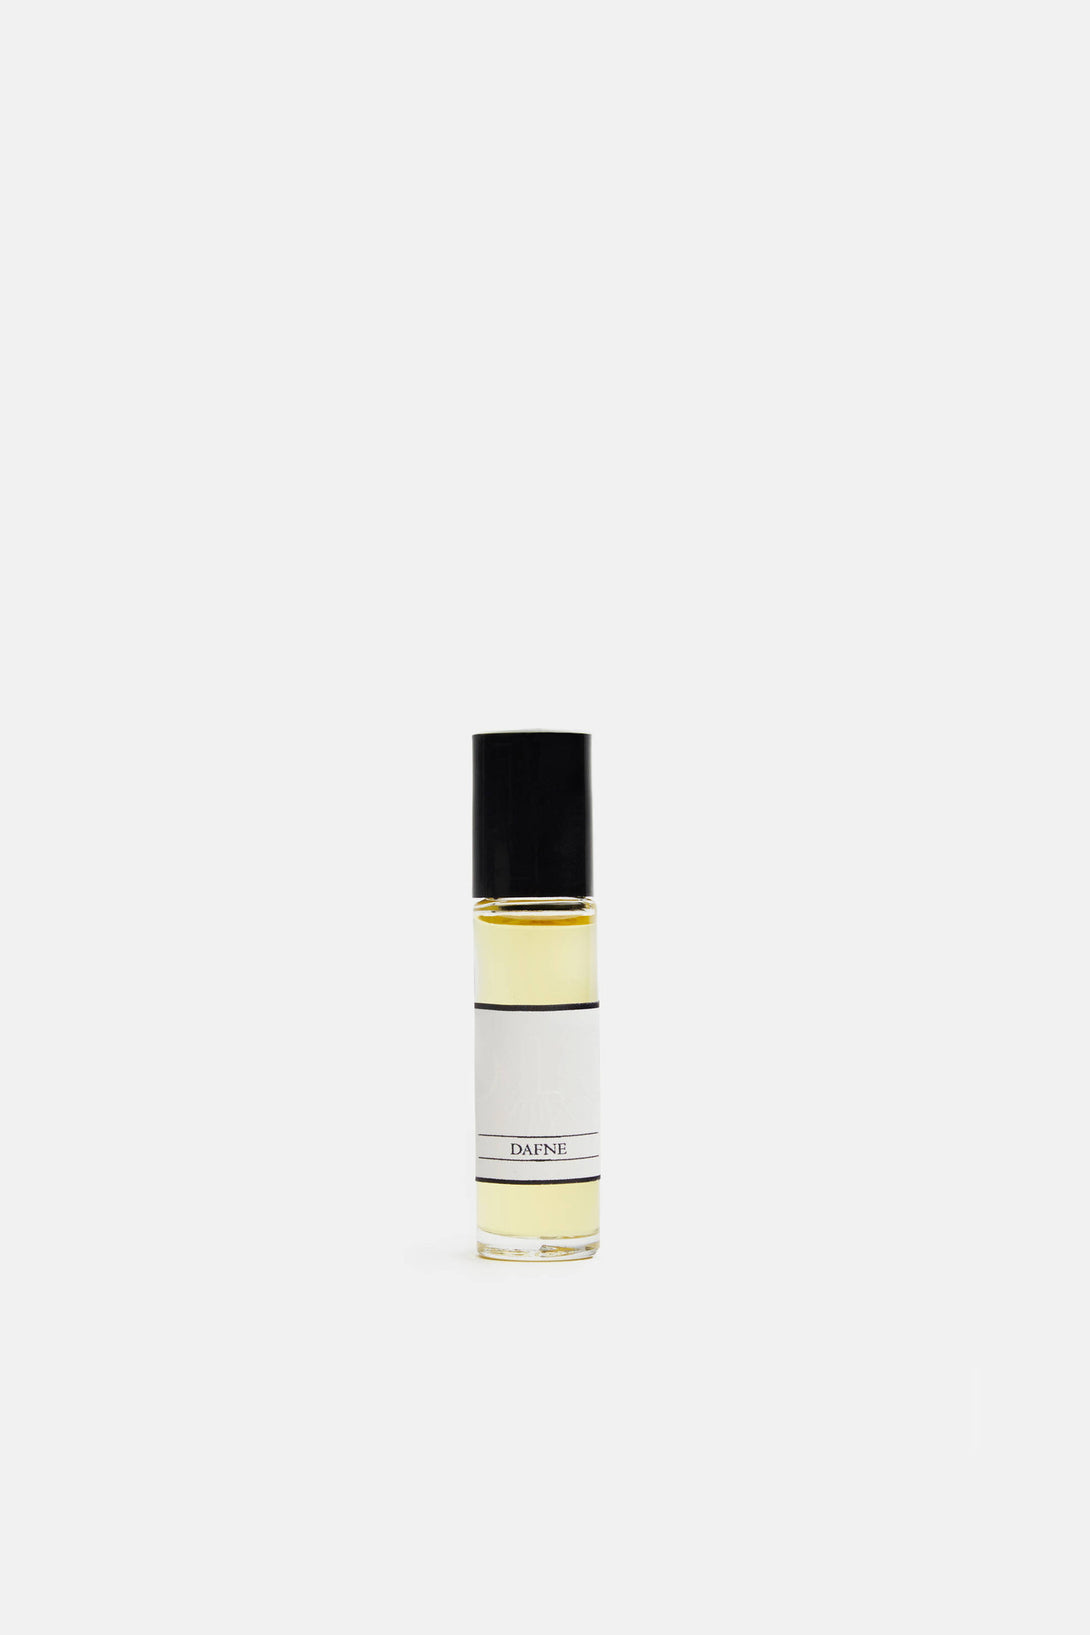 Dafne Roller Ball Fragrance - 9 ML